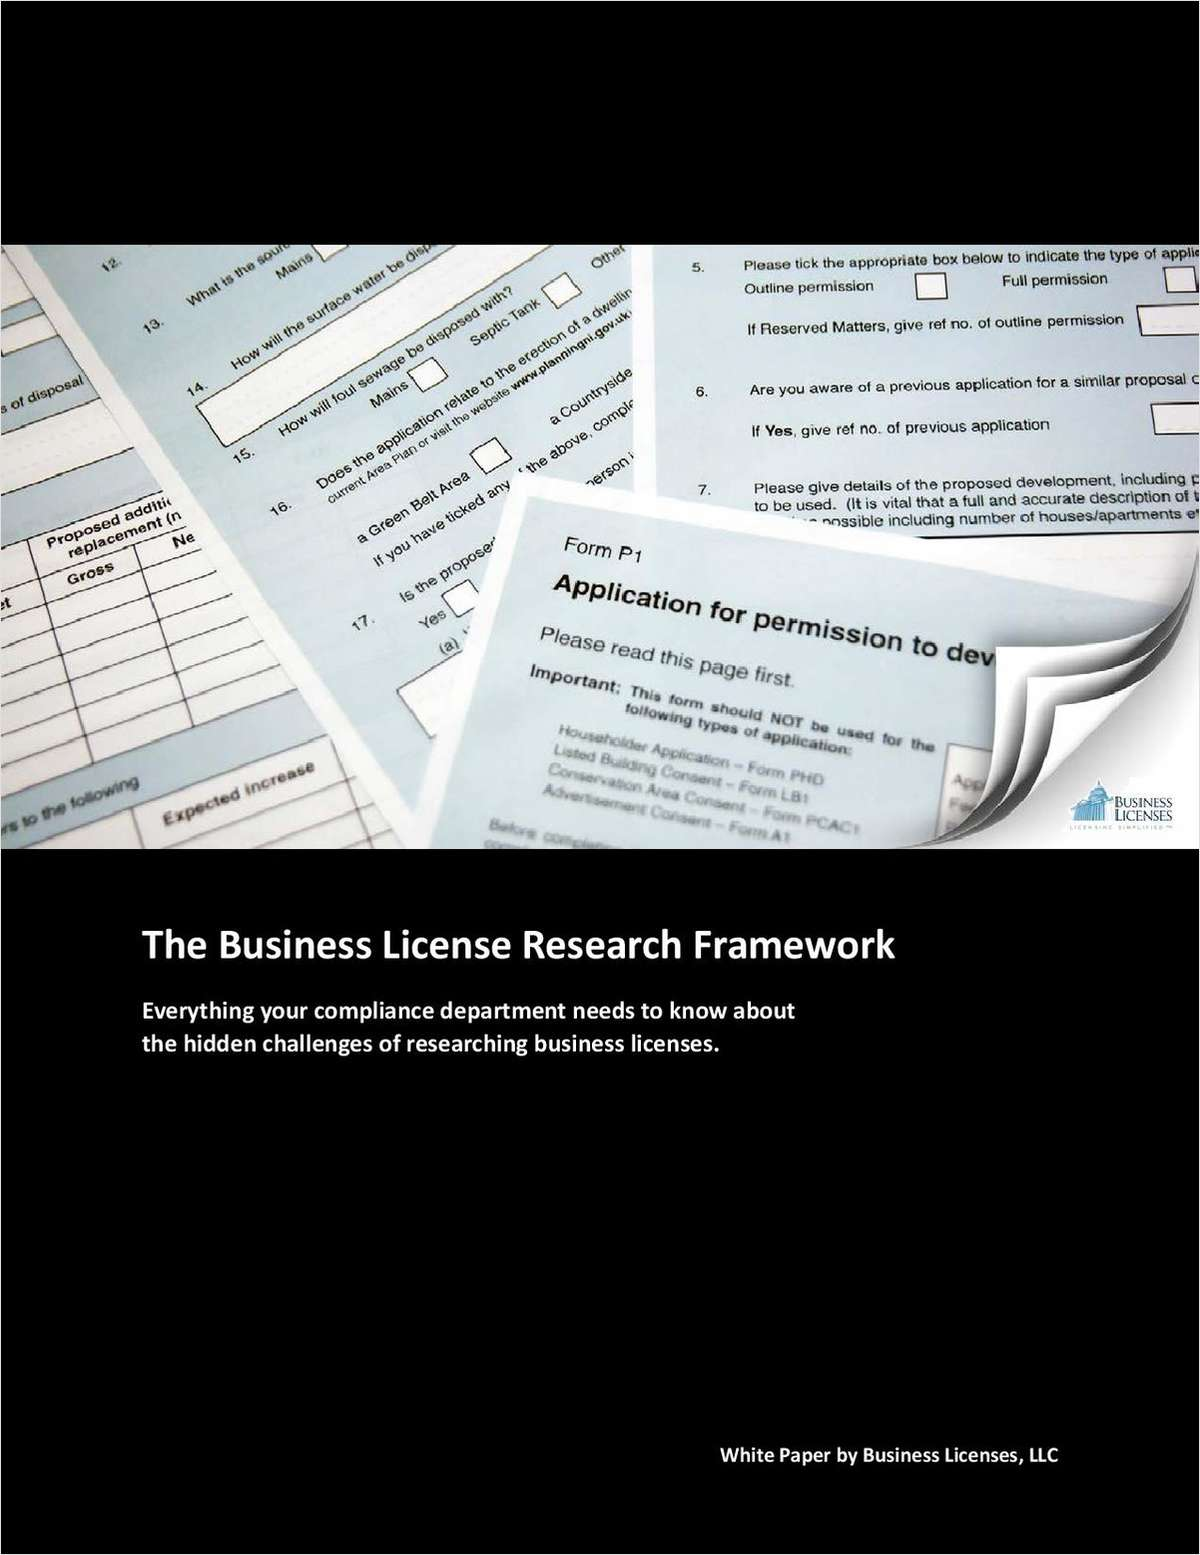 The Business License Research Framework